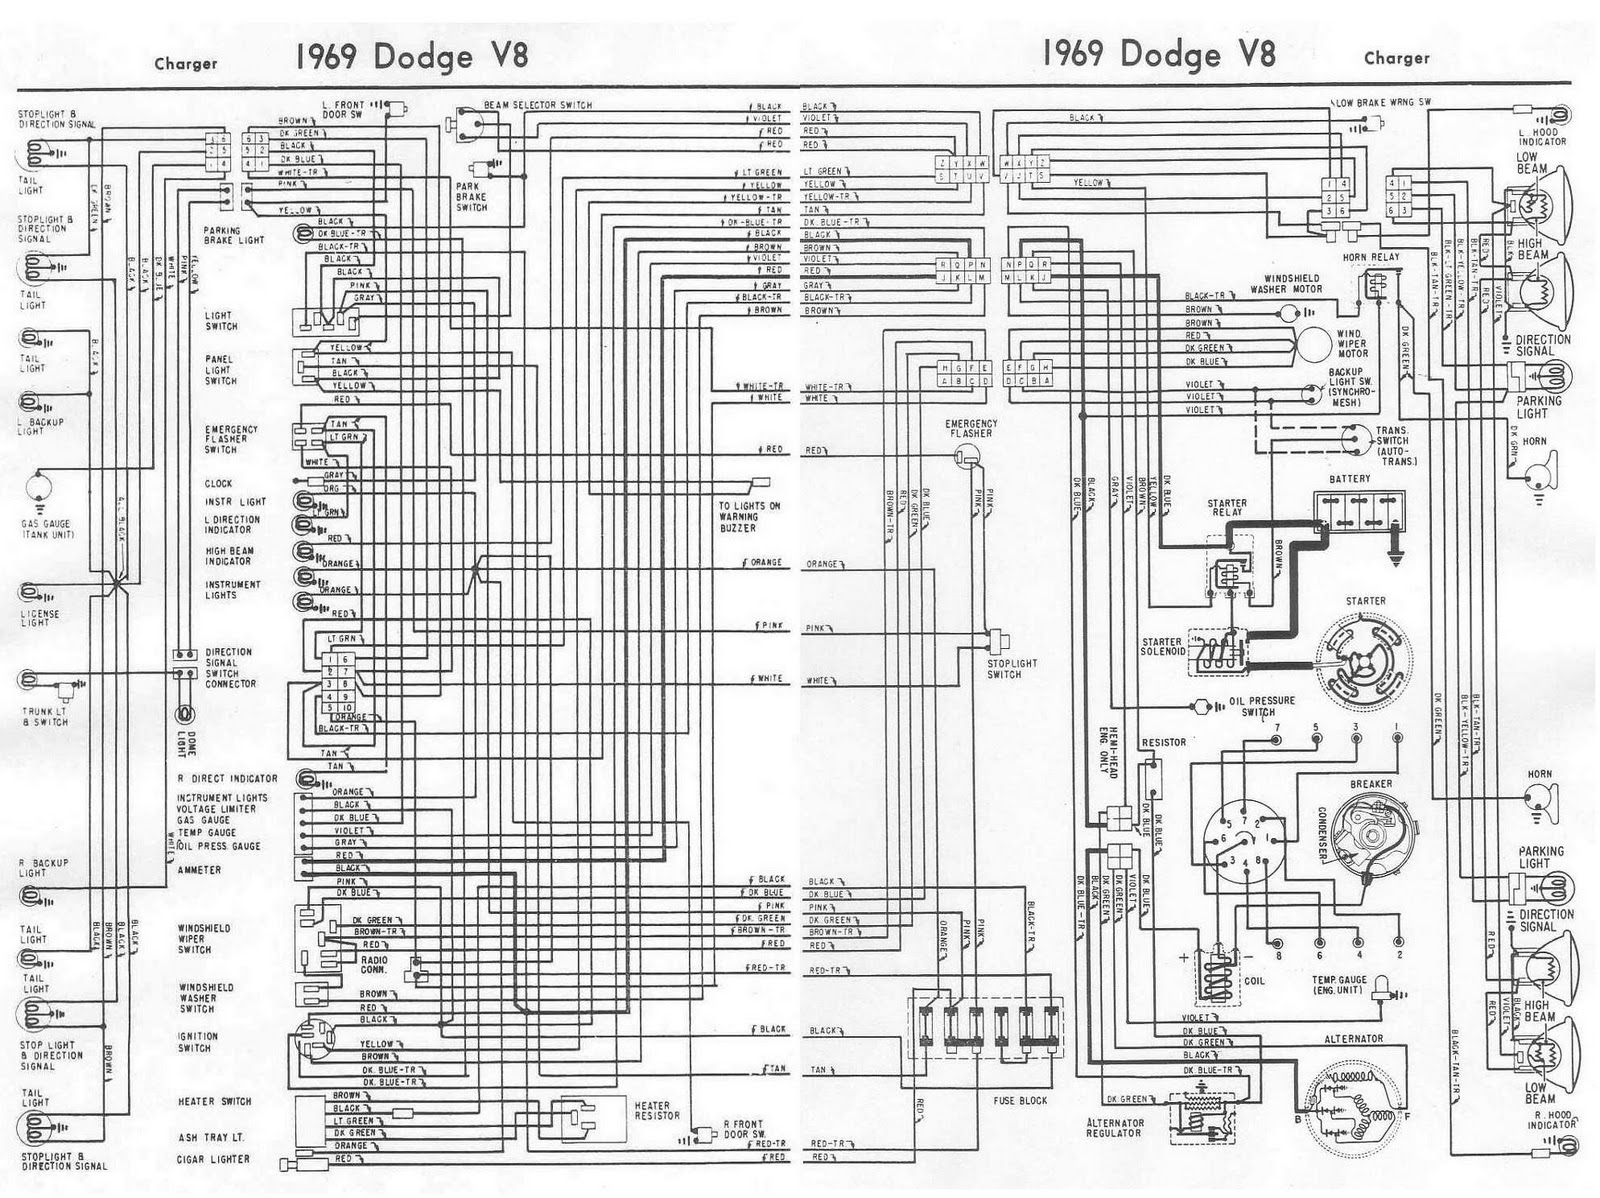 1969+Dodge+Charger+V8+Complete+Wiring+Diagram dodge challenger wiring schematic wiring diagrams schematics